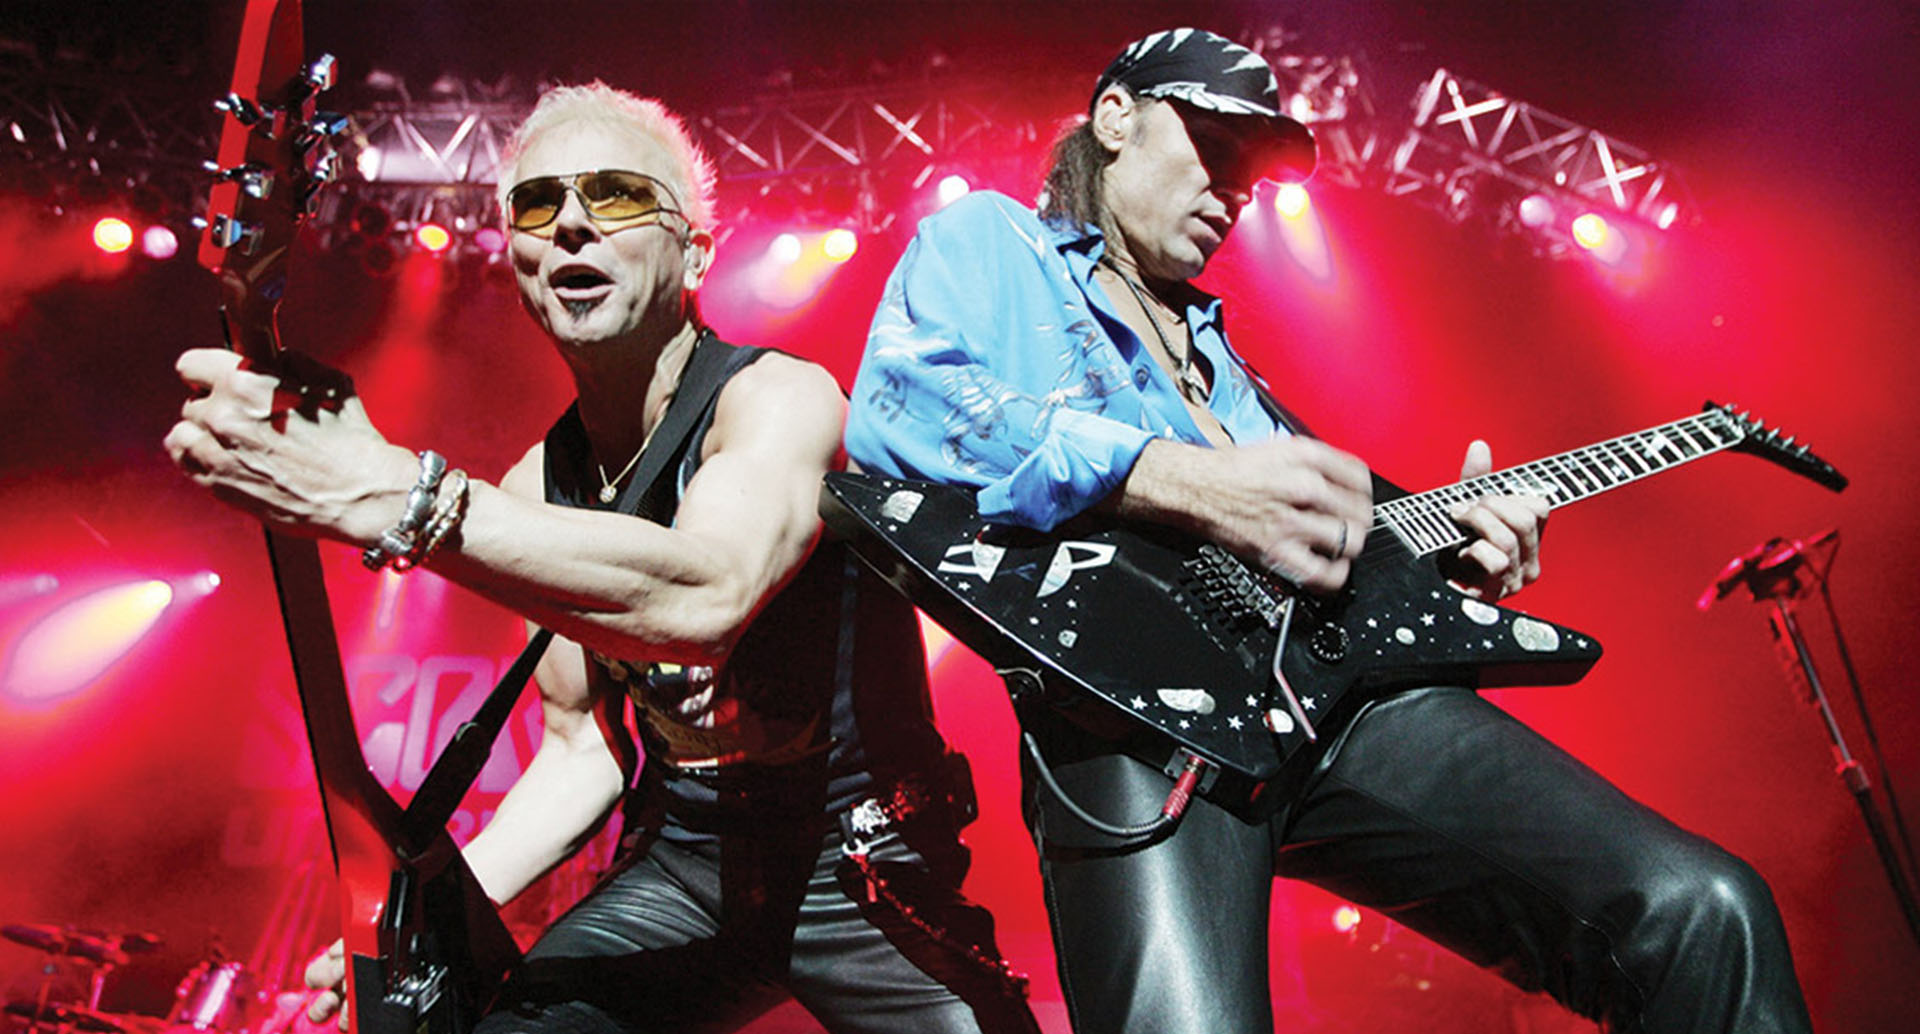 Scorpions and Whitesnake Return to Headline Singapore Rock Fest II